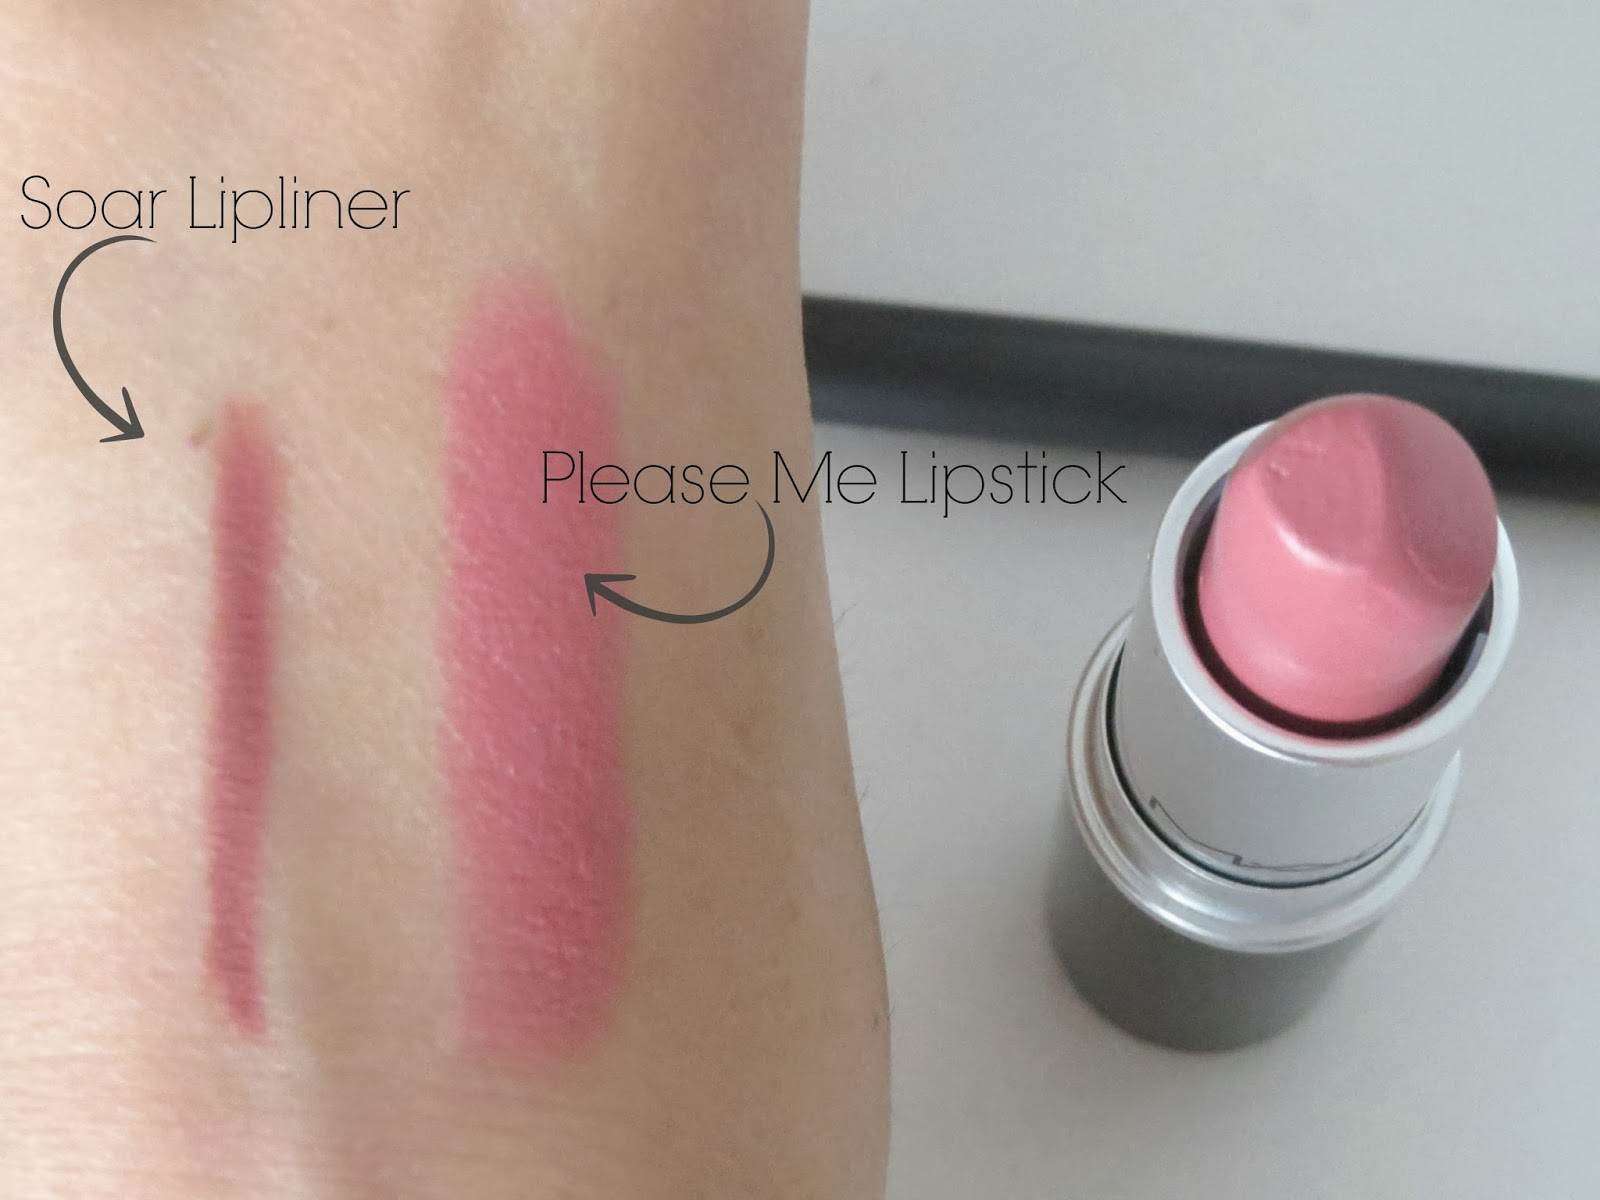 Top MAC Please Me Lipstick | Review & Swatches - Beauty and the Chic LS06